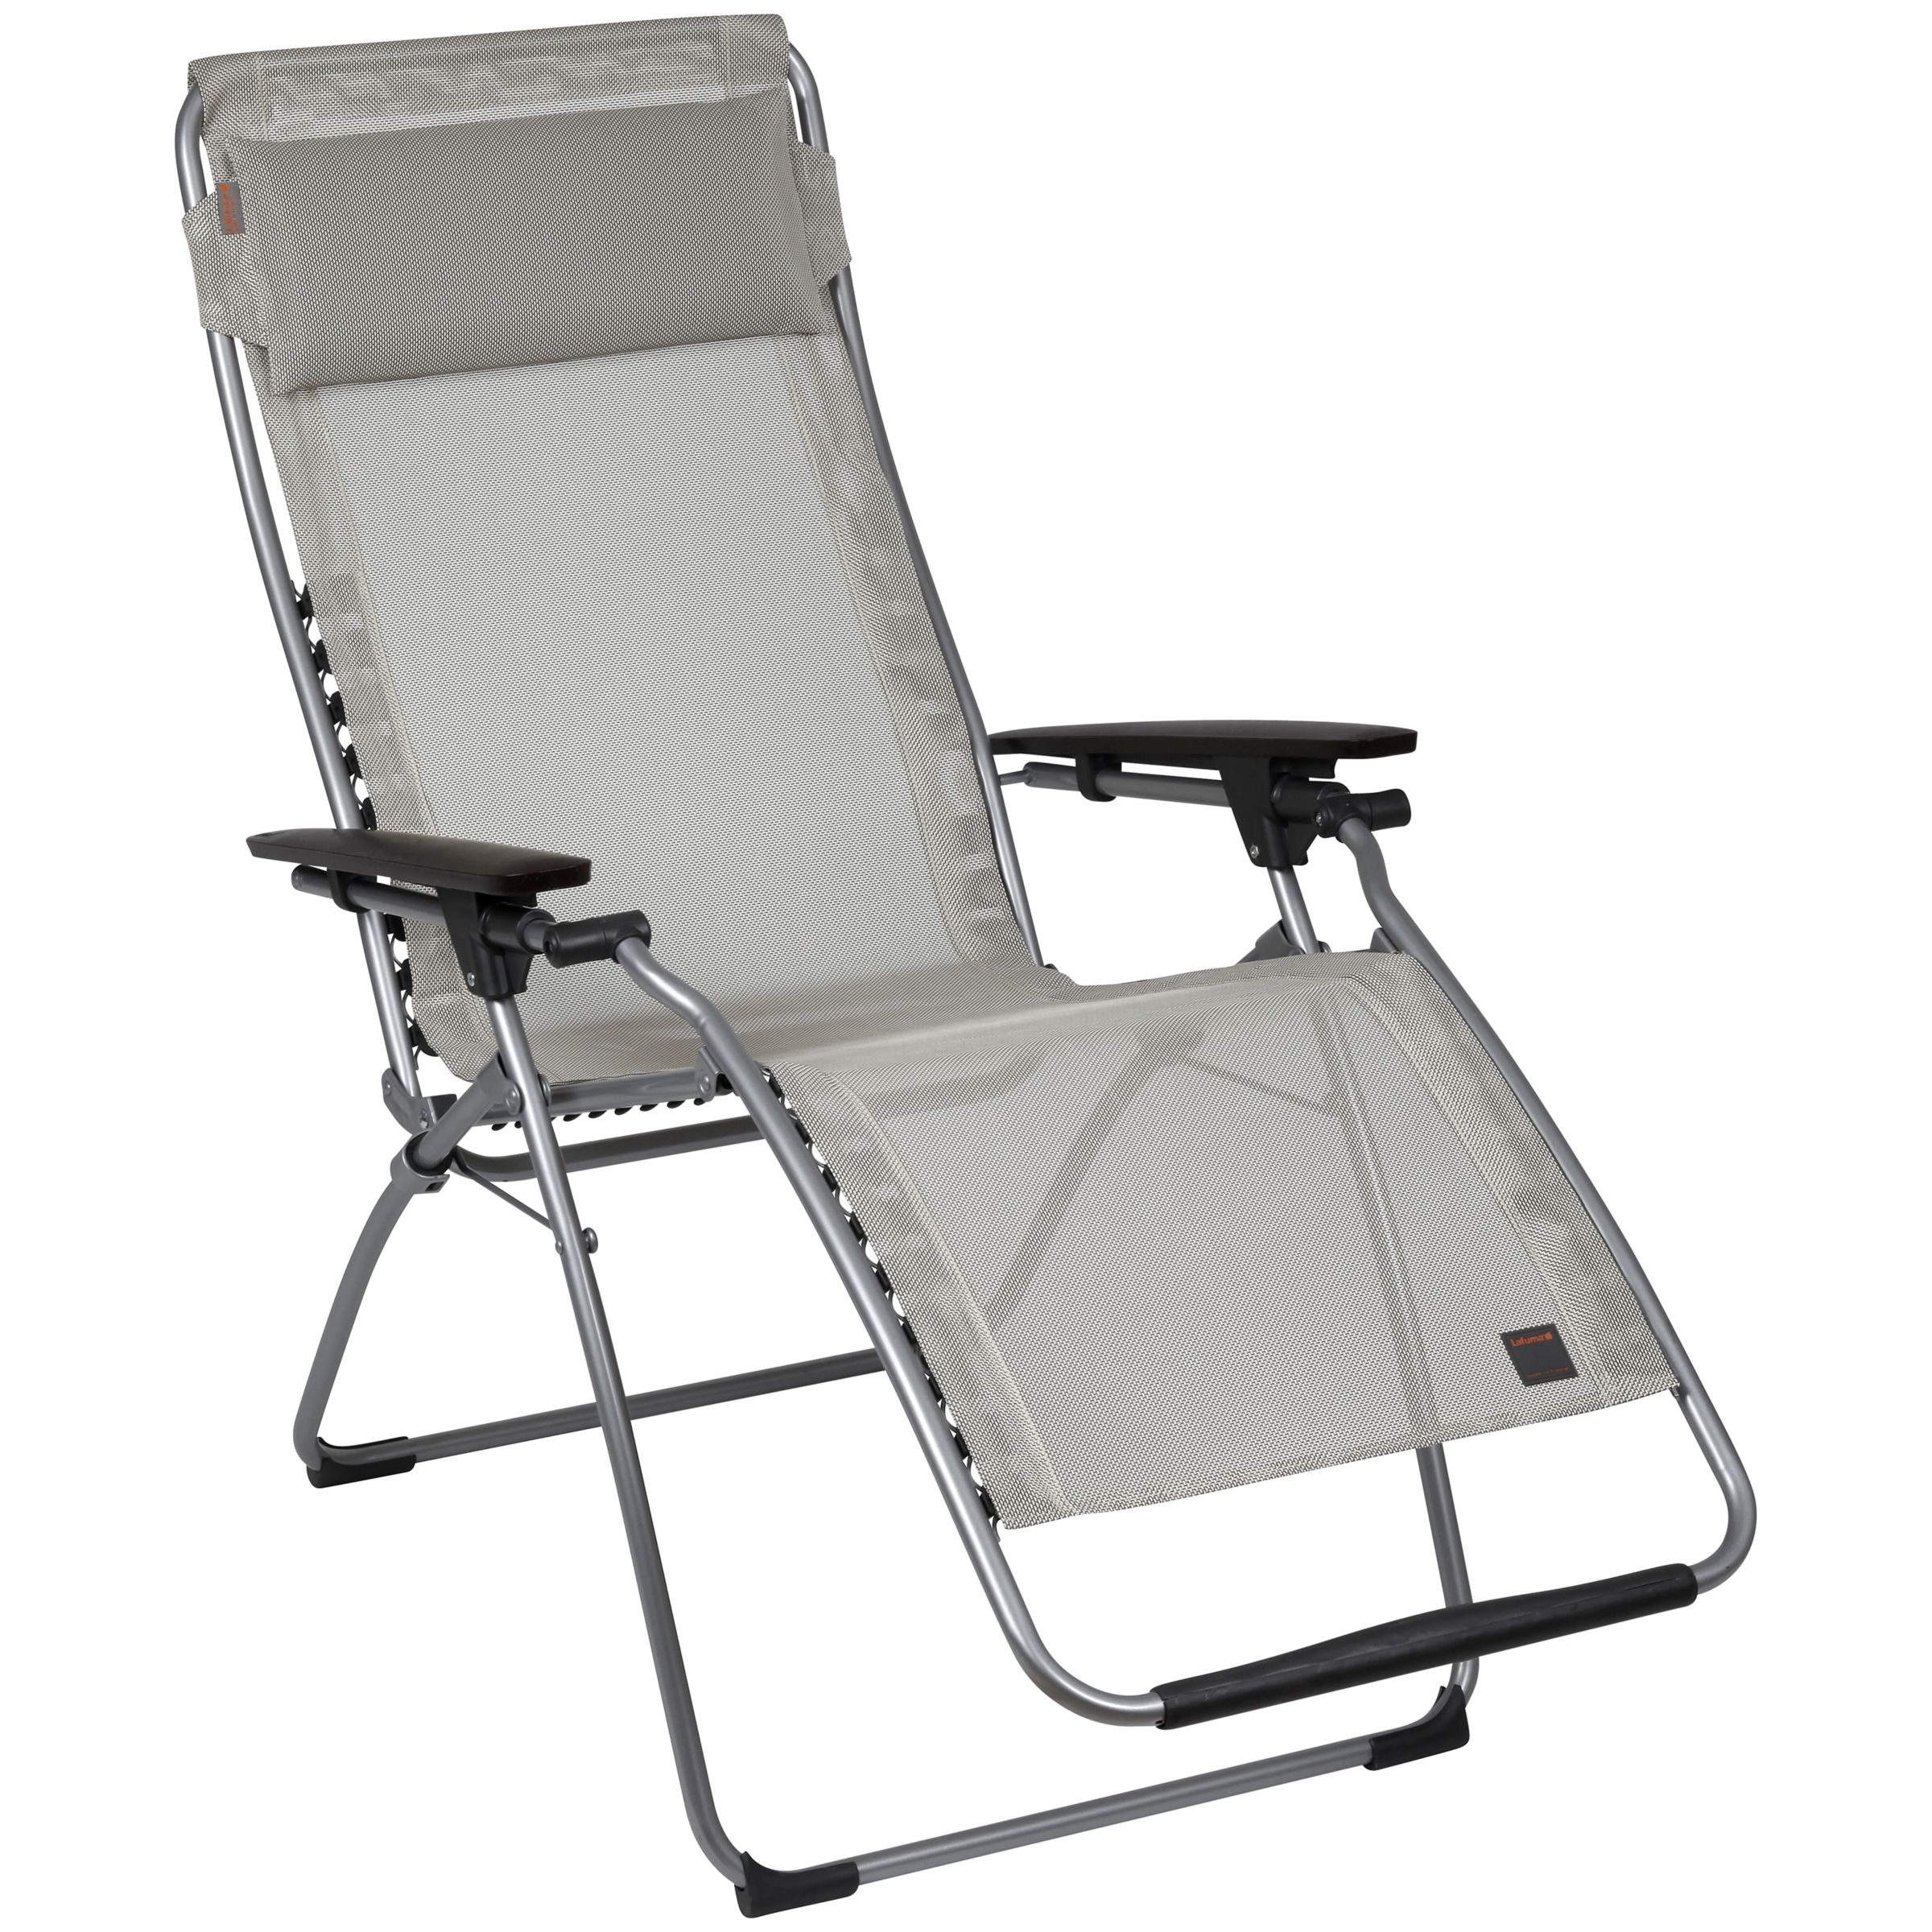 Futura Outdoor Relaxer Chair, Charcoal, Extra Large